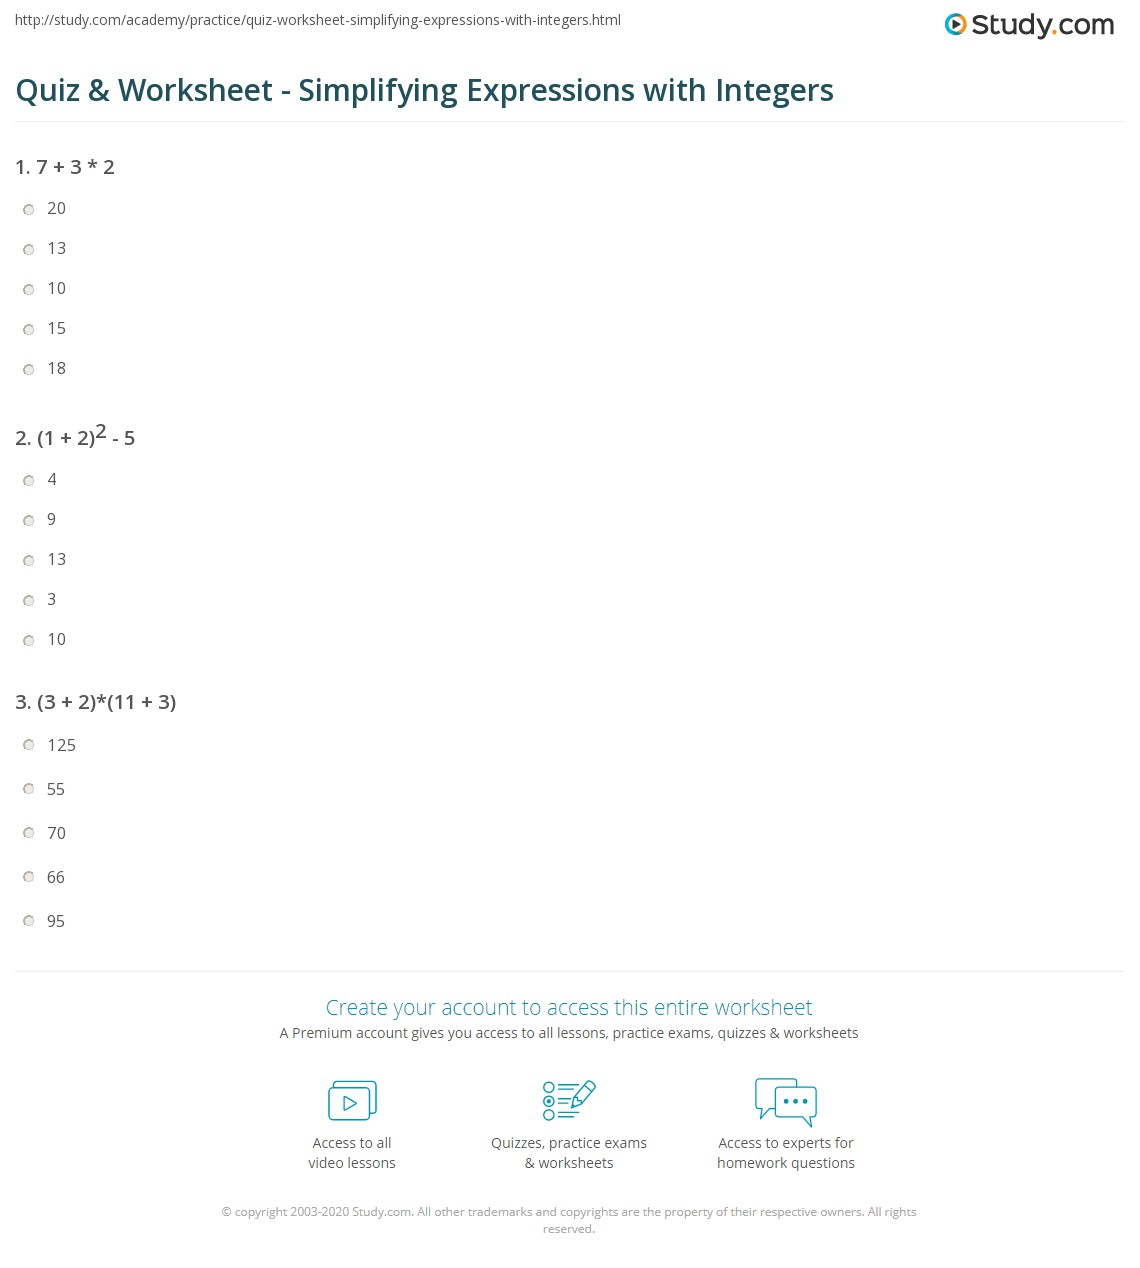 Quiz \u0026 Worksheet Simplifying Expressions With Integers Study Com Expanding Brackets Worksheet Print How To Simplify Expressions With Integers Worksheet